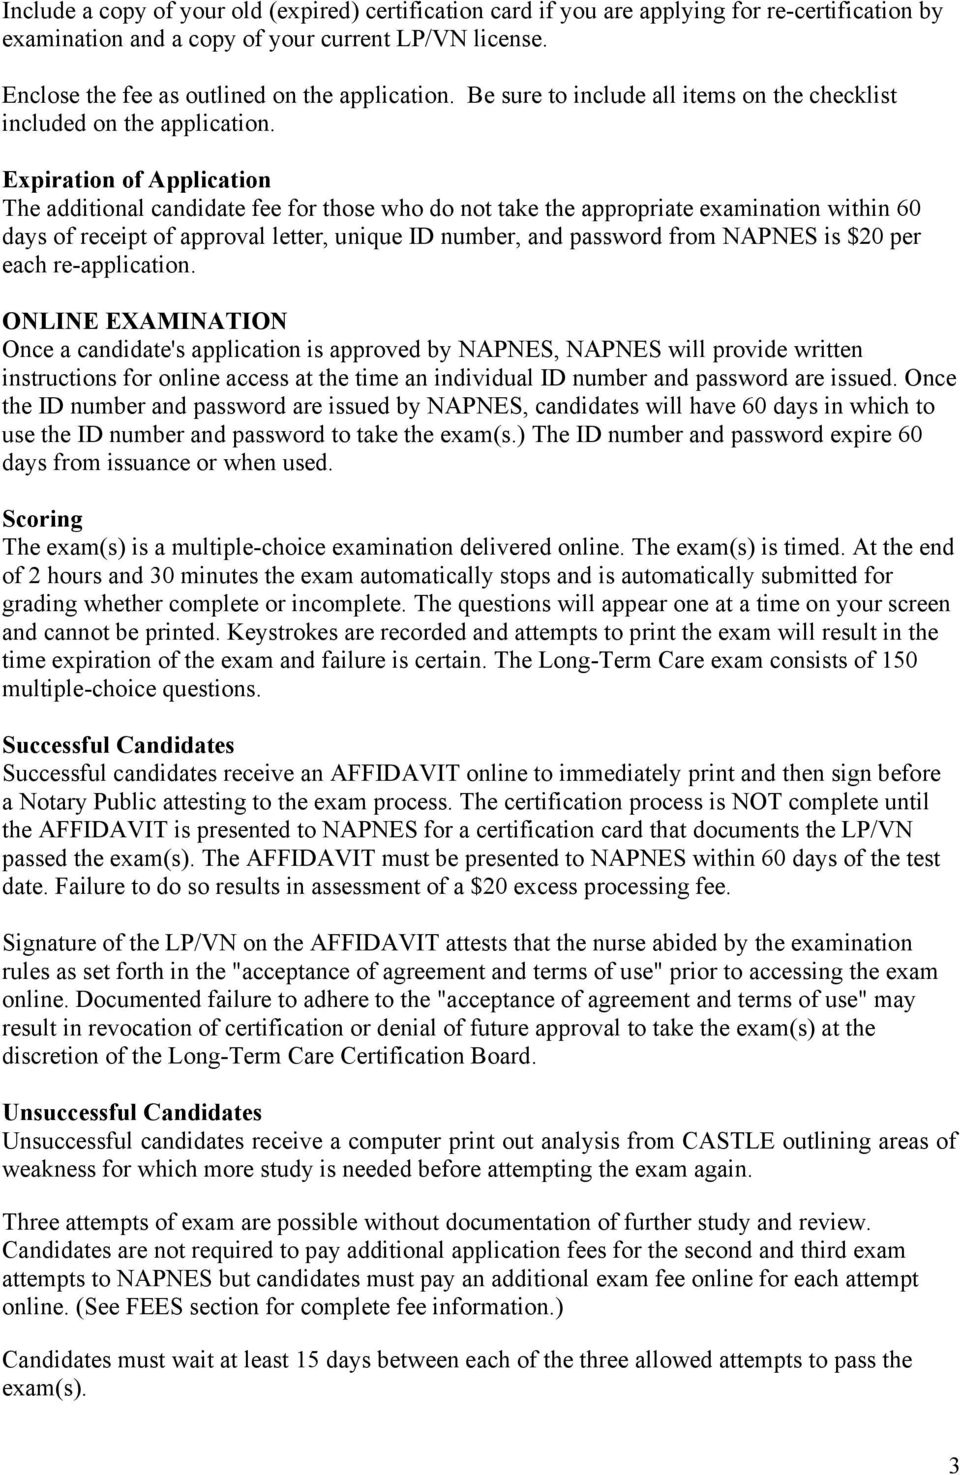 Napnes certification in long term care pdf expiration of application the additional candidate fee for those who do not take the appropriate examination 1betcityfo Images